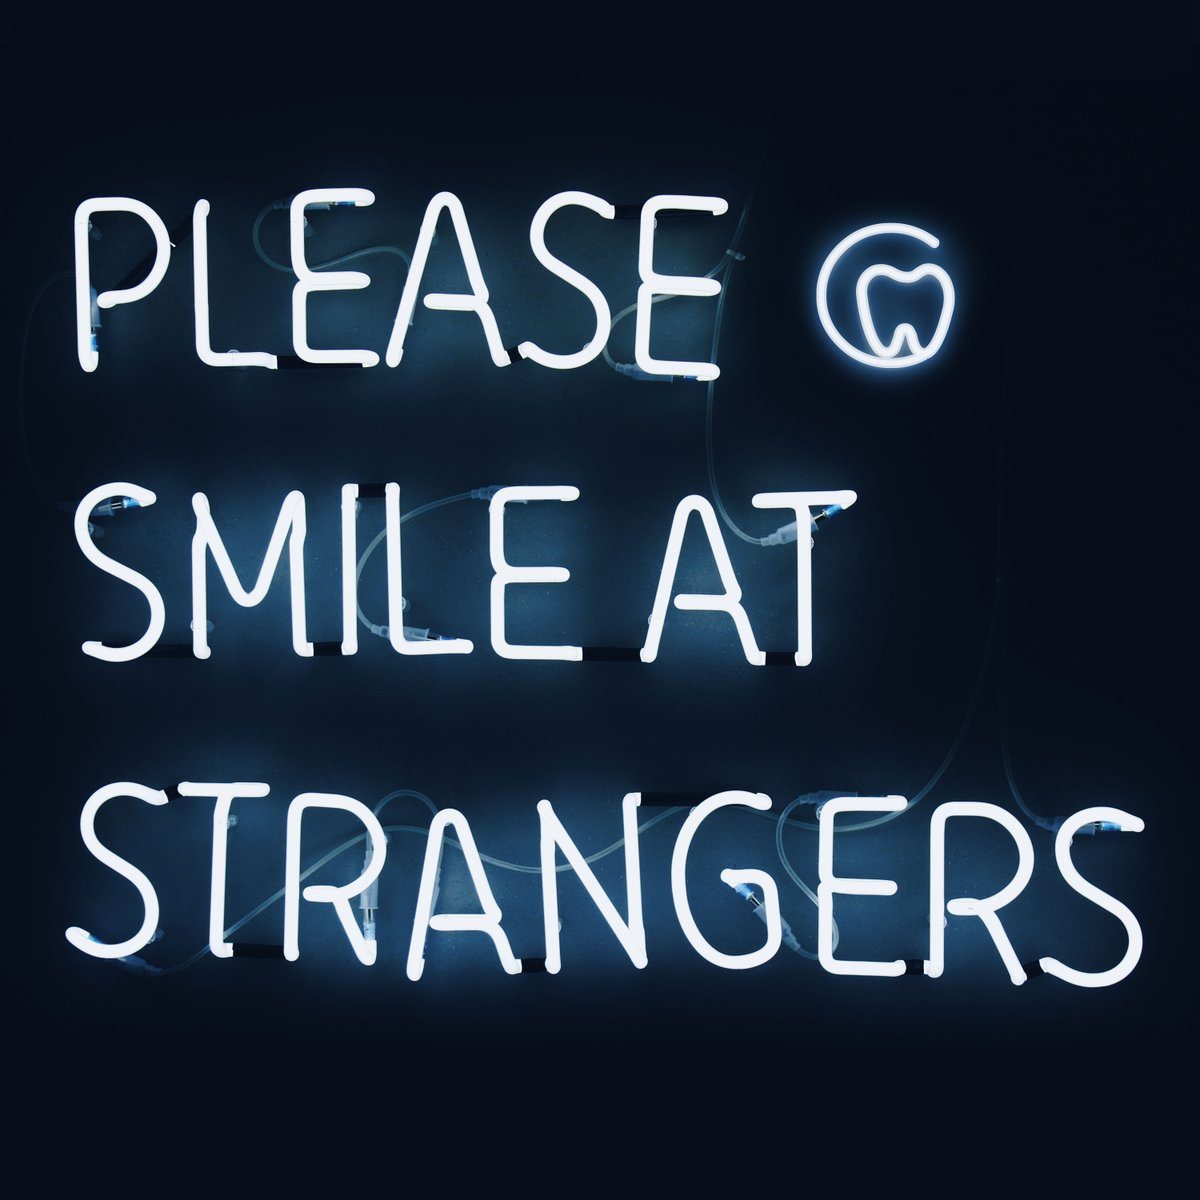 Smiling shows others that you are happy, content, and at ease. Smiling is also contagious - a simple smile can brighten someone else's day.  . . . #CustomerCare #Dentist #Dentistry #Happy #Fairfieldct #fairfildcounty #instasmiles #CTdentists #RevitalizingSmiles #Smile #Teeth